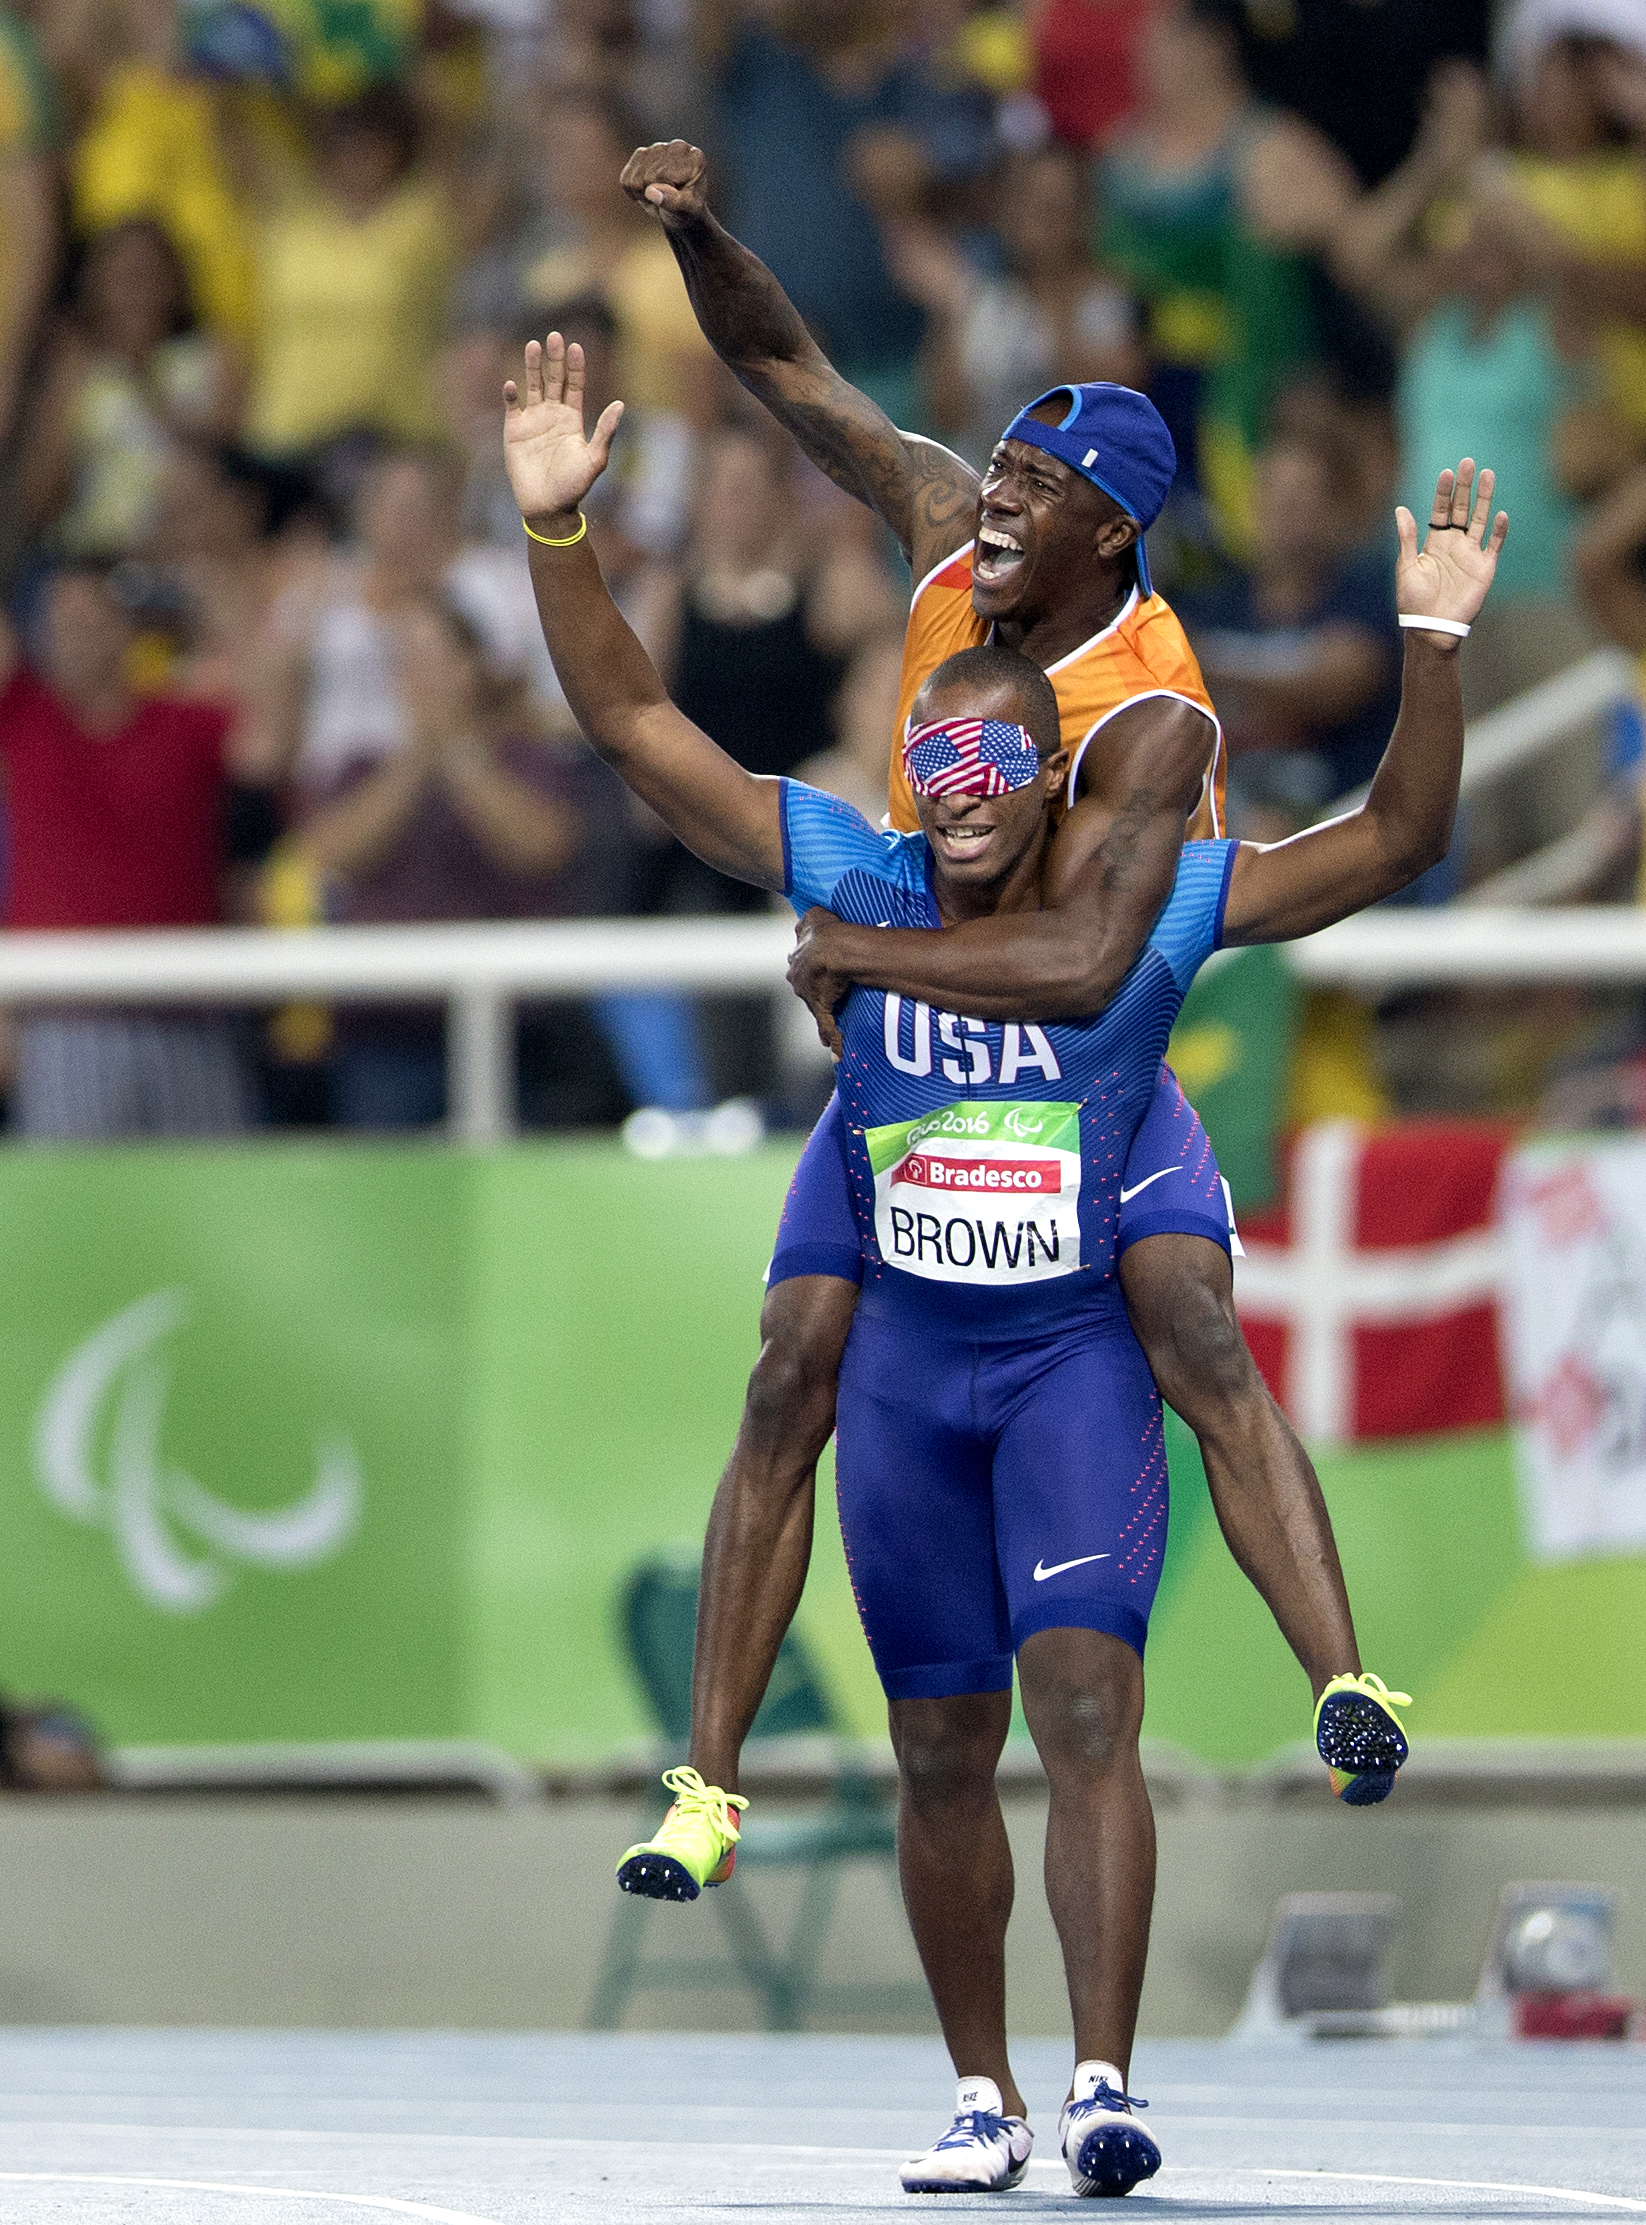 Jerome Avery, David Brown's guide, jumps ontop of Brown's back and celebrate Brown's Paralymic record time of 10.99 seconds in the 100 meter dash at the 2016 Paralympic Games at Olympic Stadium in Rio de Janeiro, on Sunday, Sept. 11, 2016.